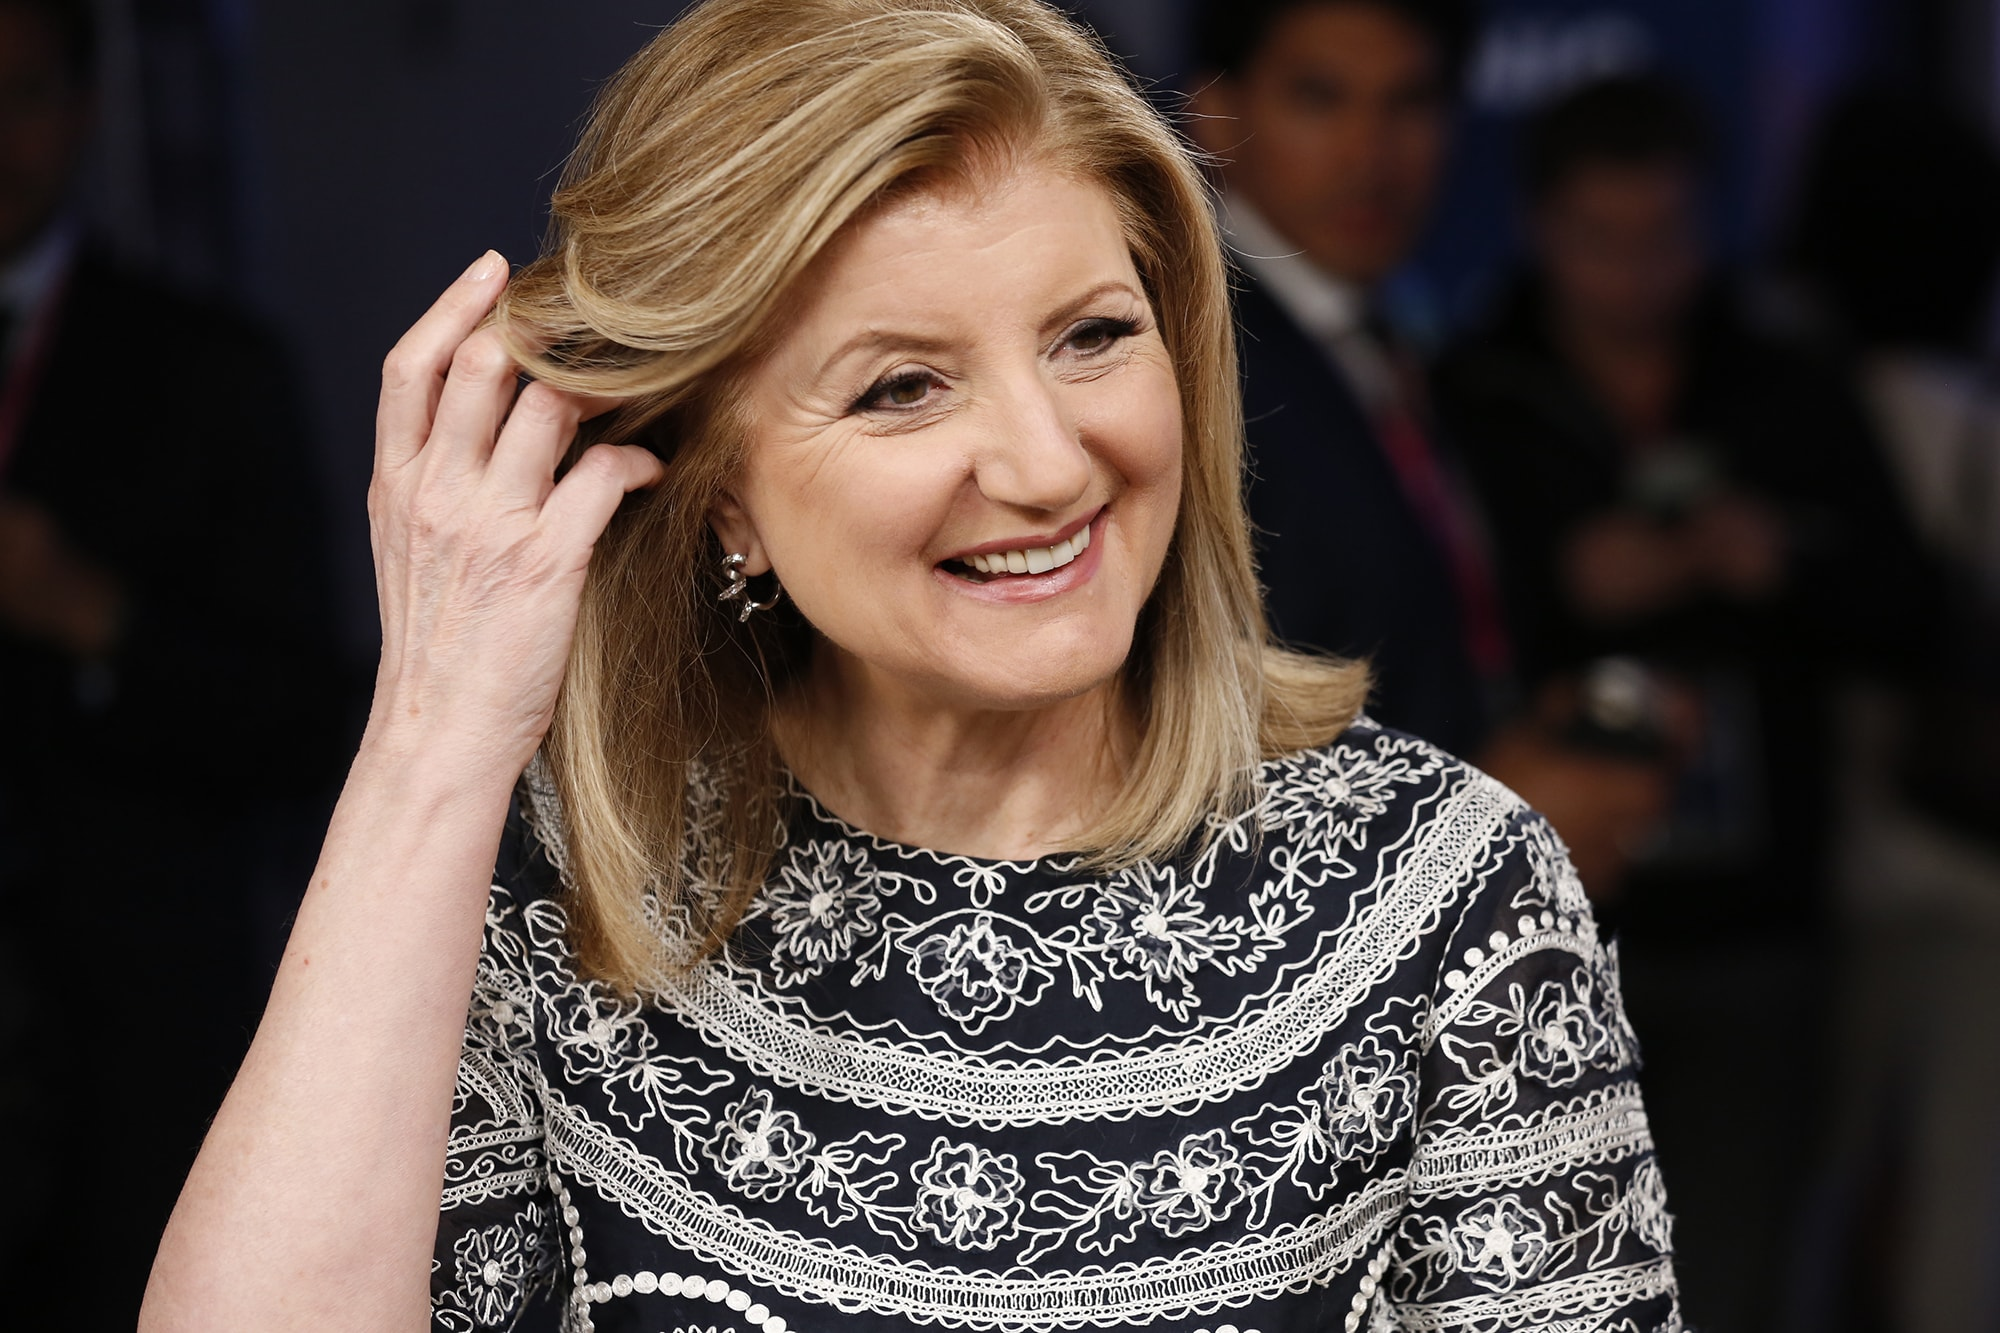 Arianna Huffington via CNBC